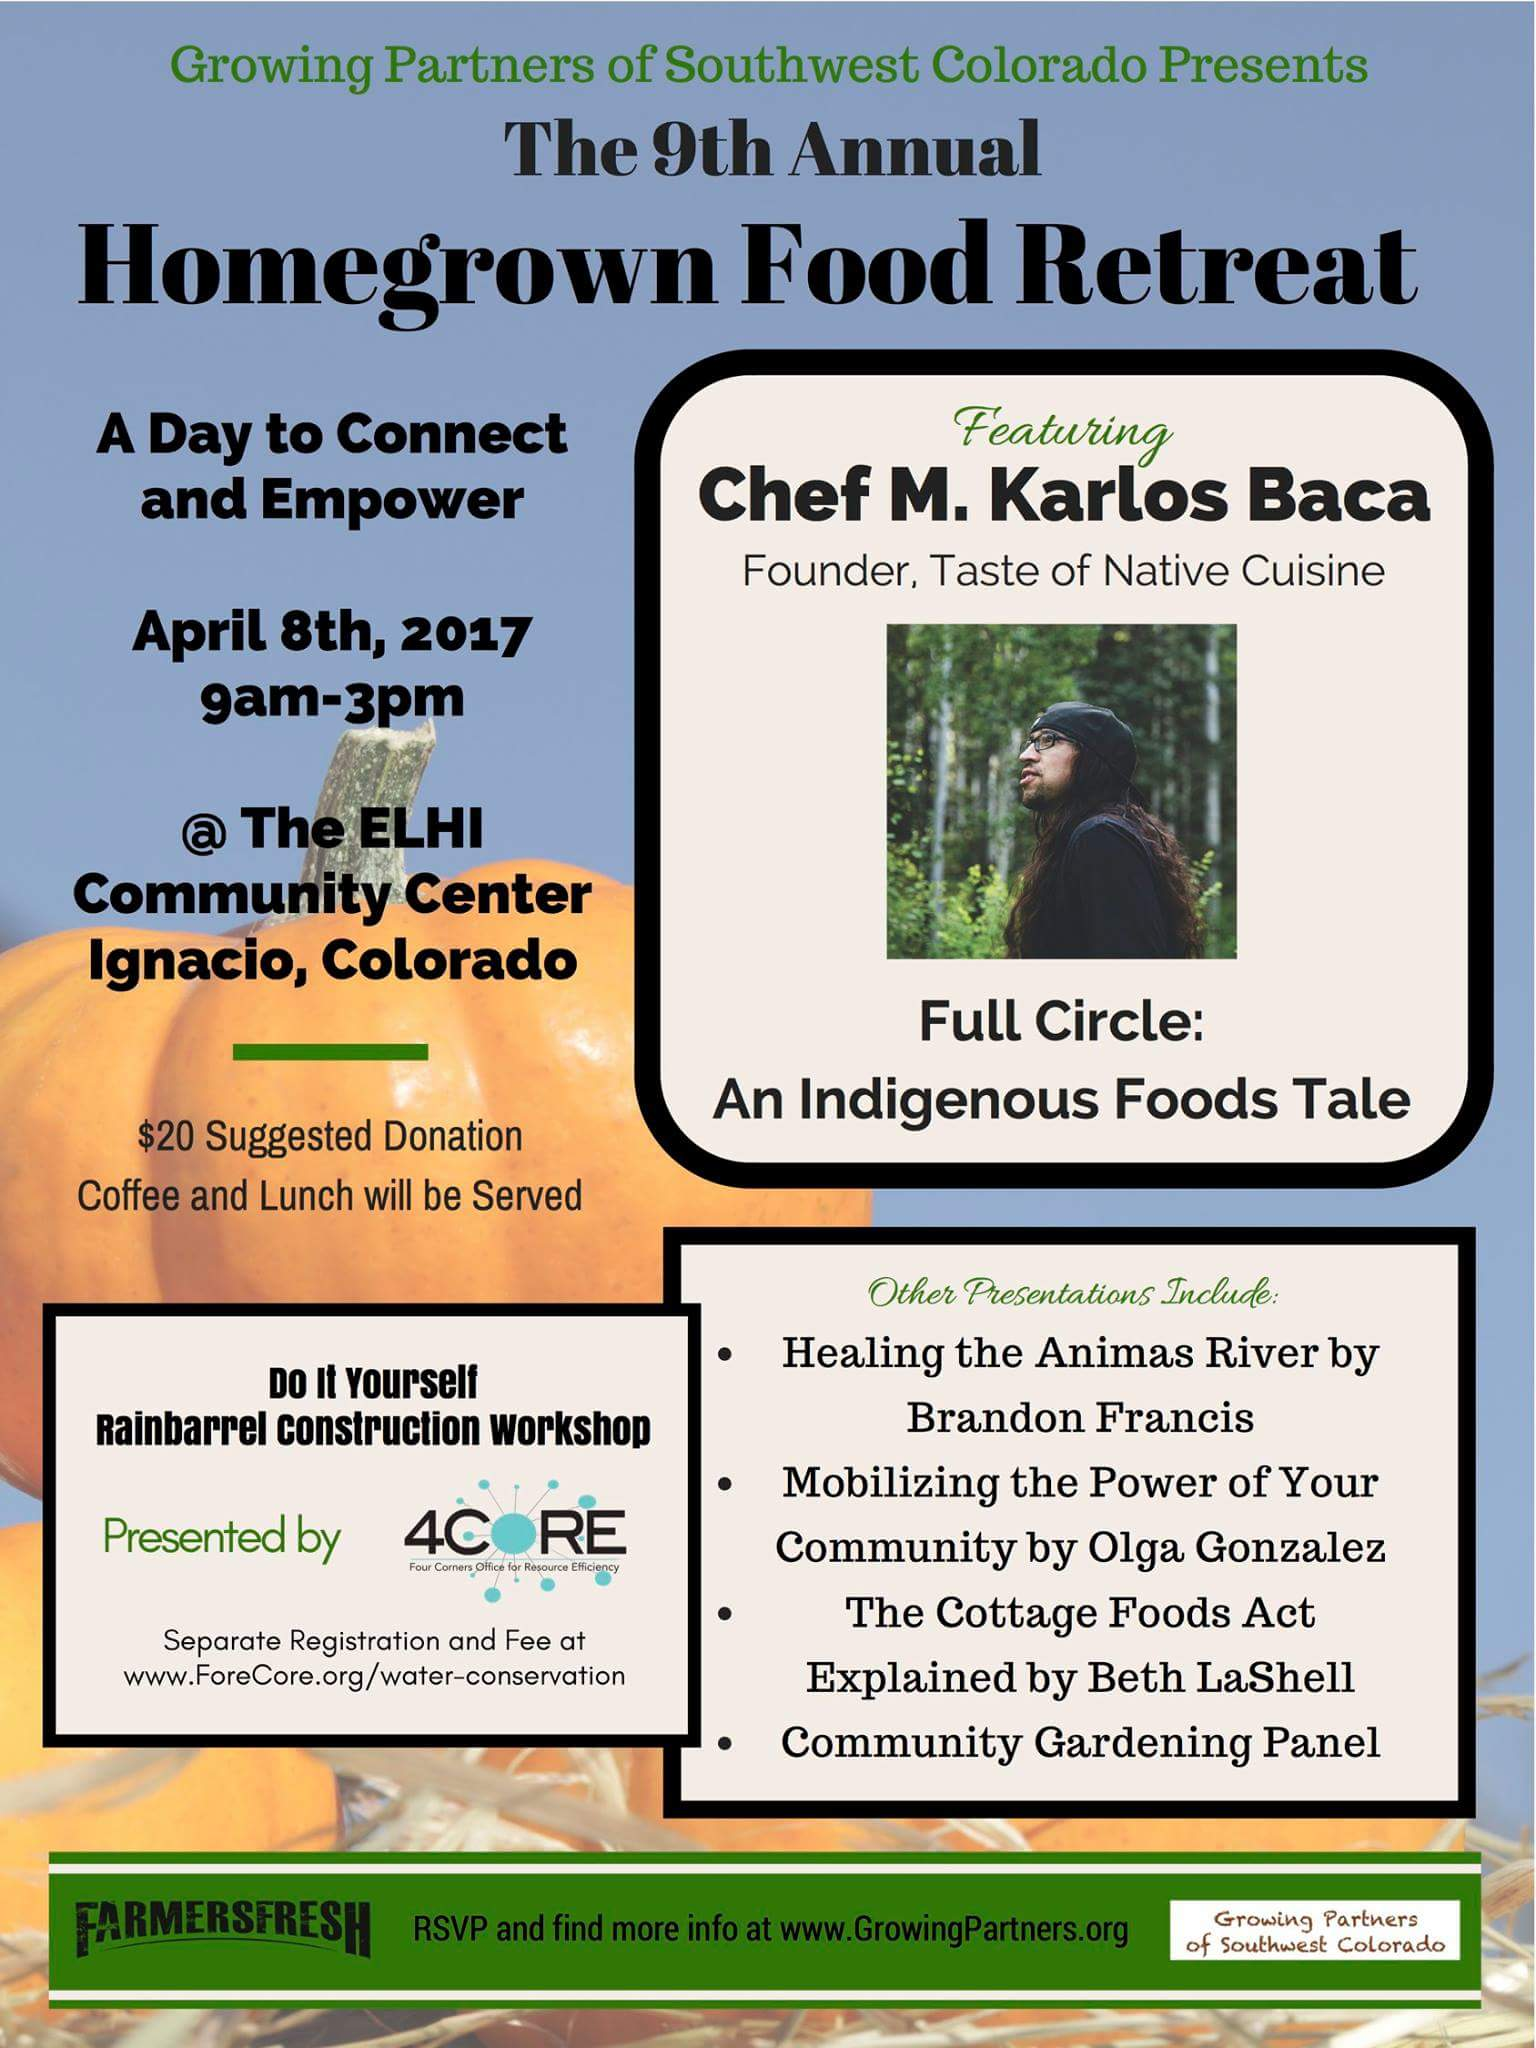 The 9th Annual Homegrown Food Retreat